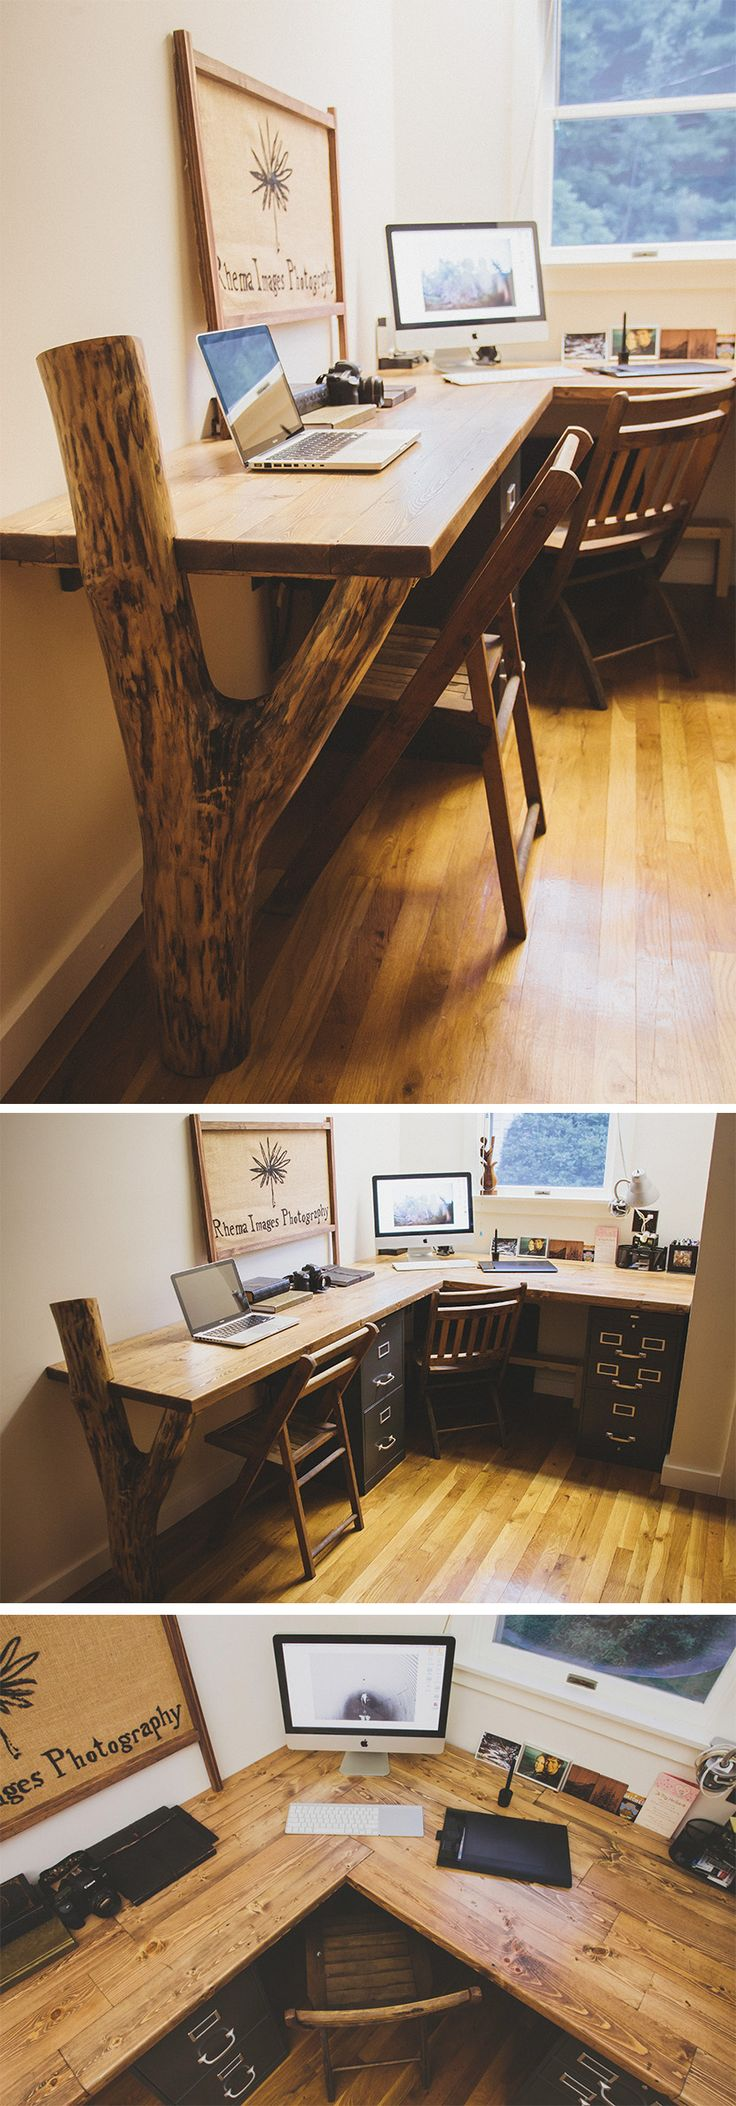 79 best images about l shaped desk on pinterest desk for Reclaimed wood dc